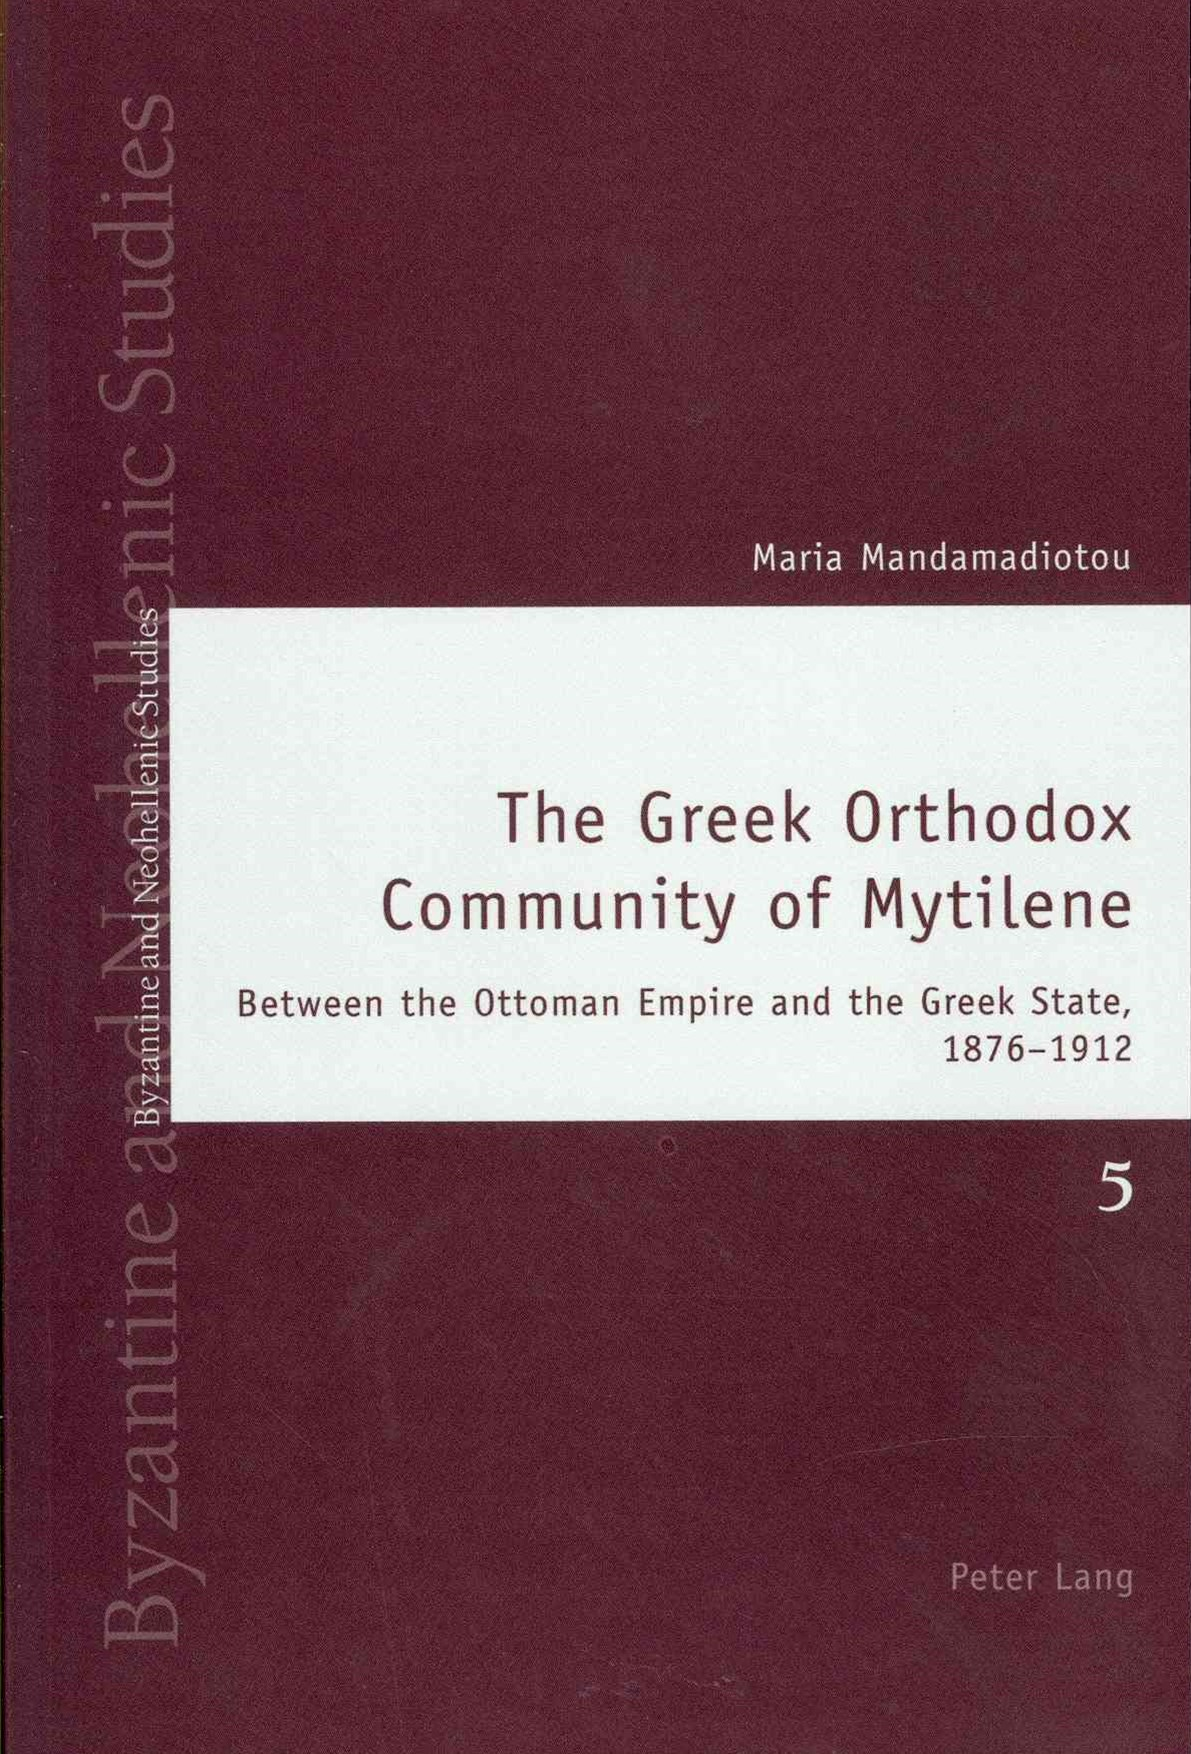 The Greek Orthodox Community of Mytilene